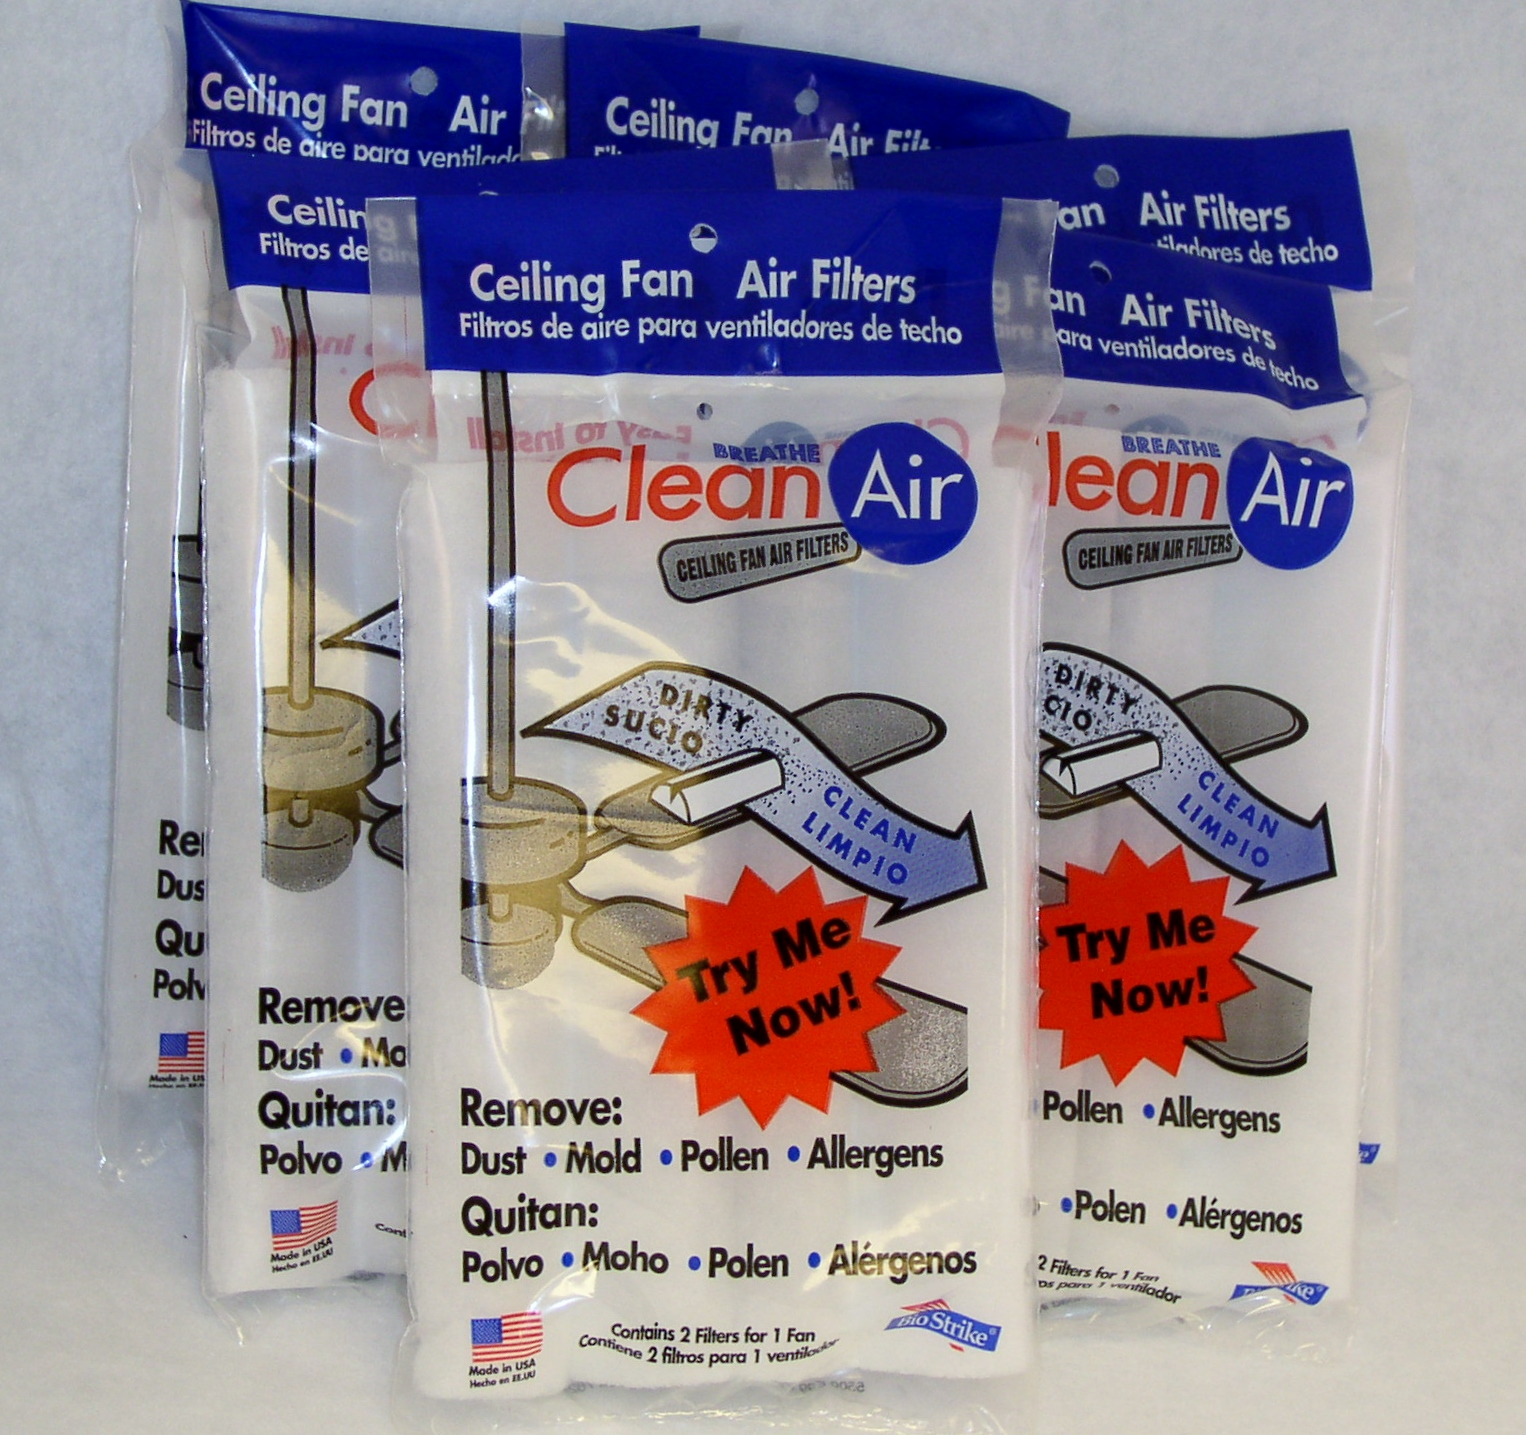 Ceiling fan air filtersbiostrike ceiling fan air filters breathe clean air breath clean air with biostrike air filters aloadofball Gallery